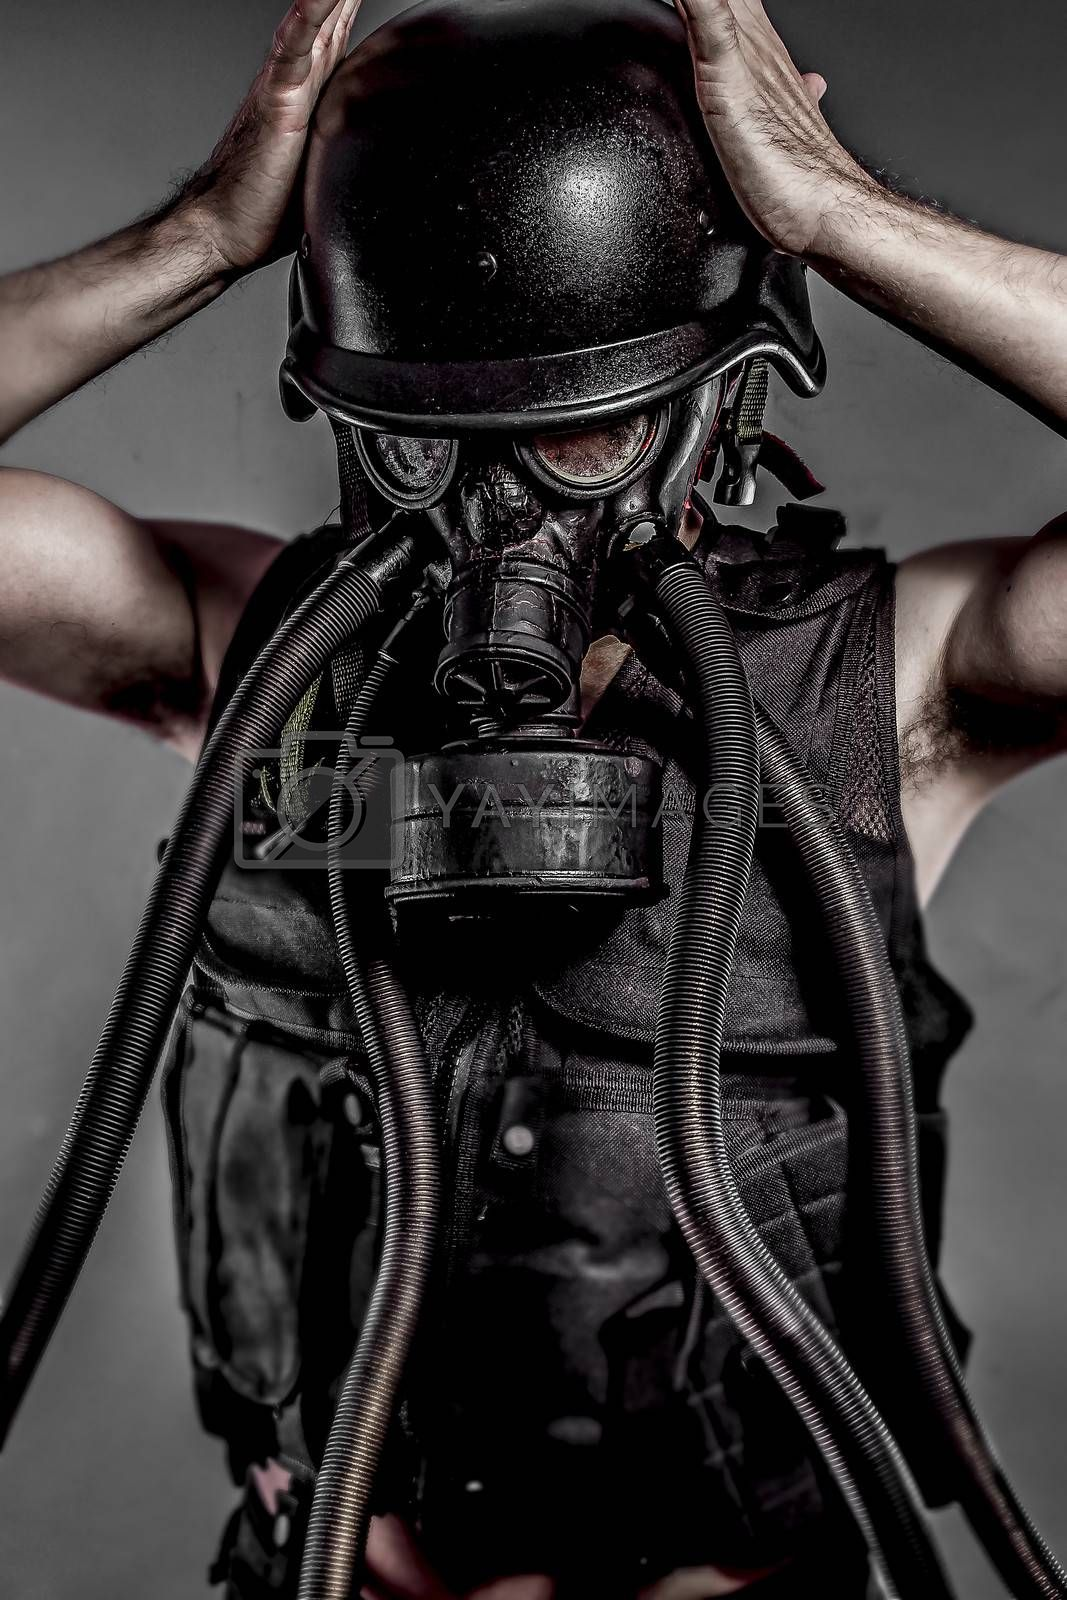 Contamination, nuclear disaster, man with gas mask, protection by FernandoCortes